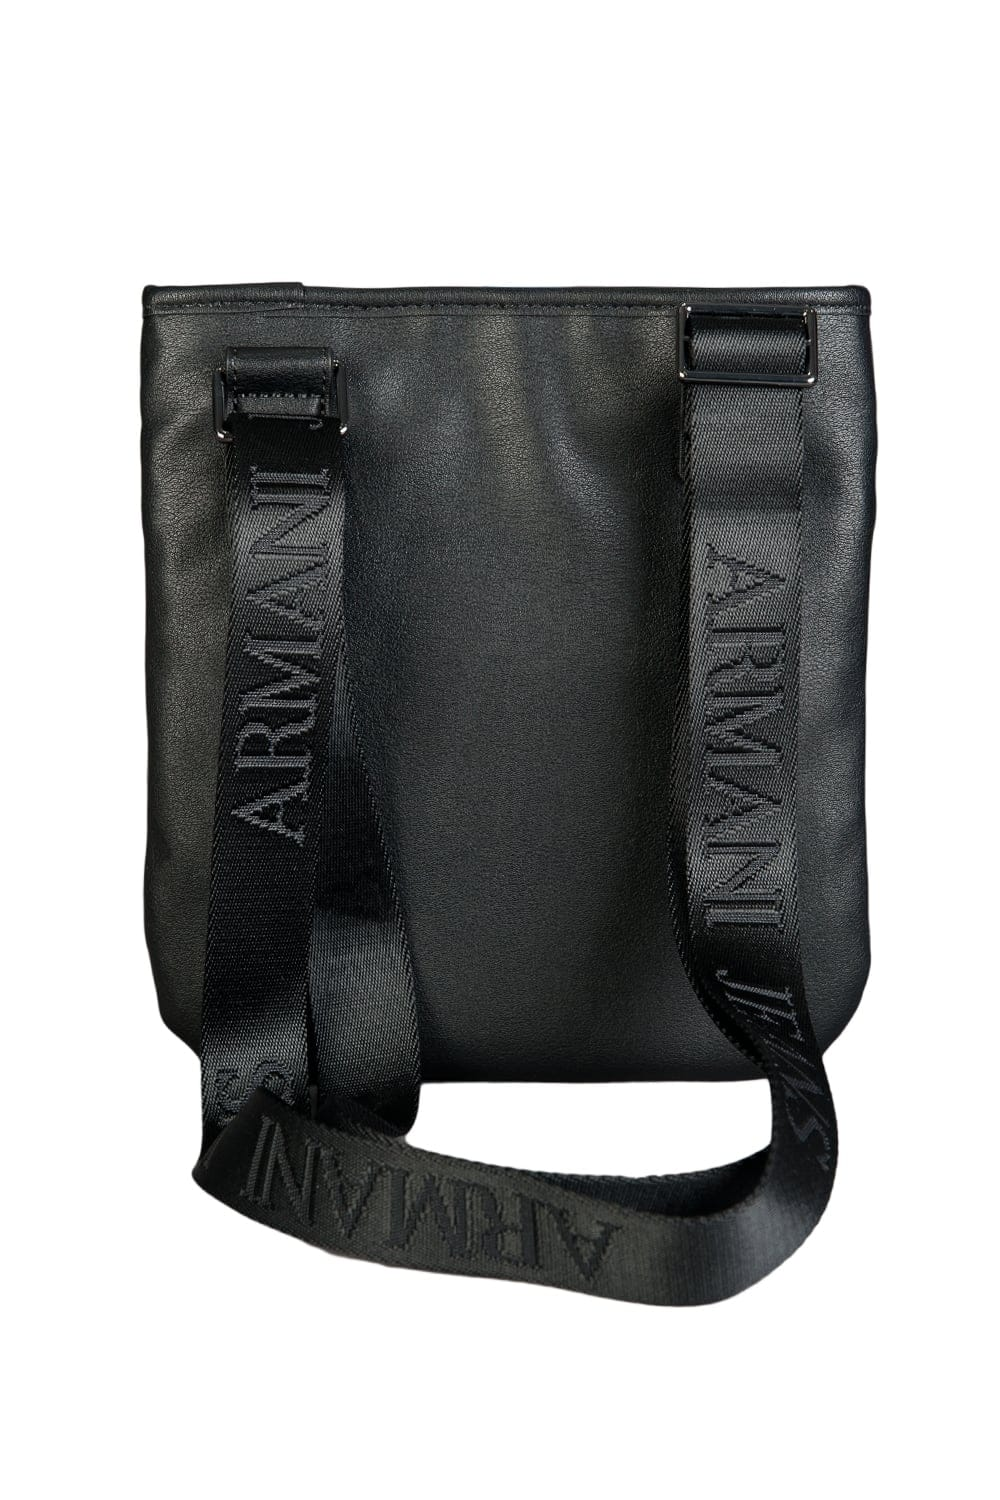 b8576869dd13 armani jeans messenger bag grey Armani Jeans Messenger Bag C6277 S8 -  Accessories from Sage Clothing